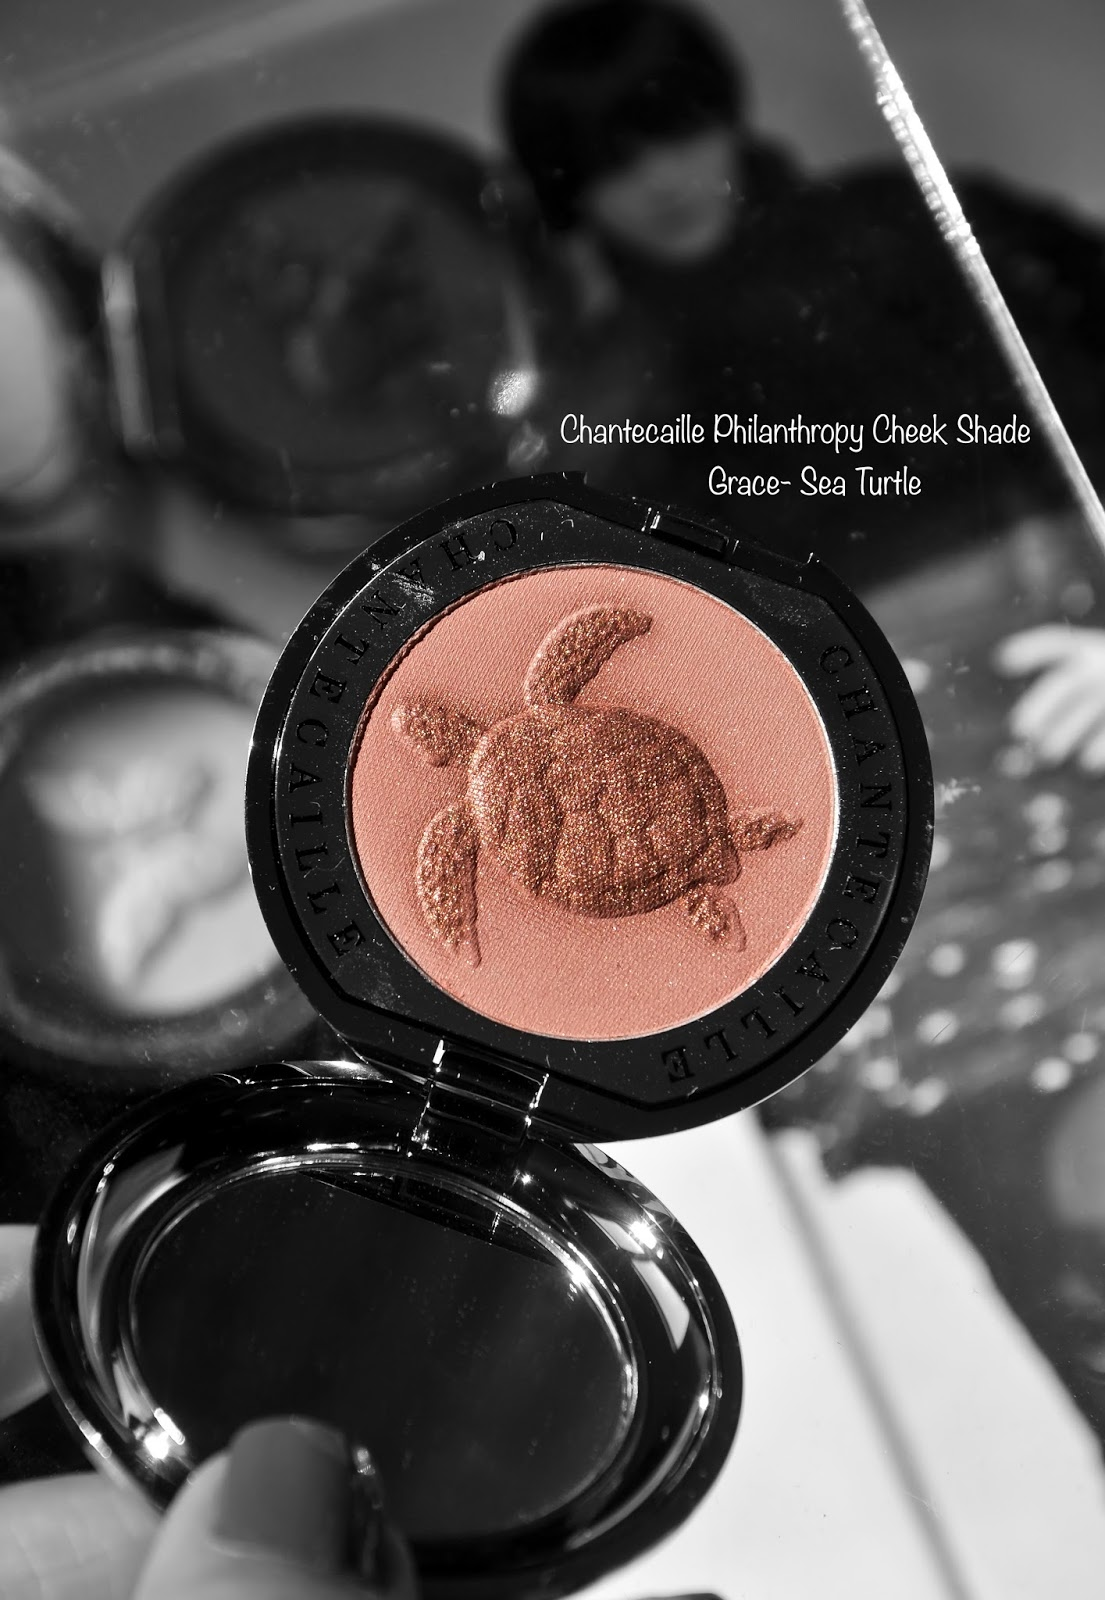 Chantecaille Philanthropy Cheek Shade Grace-Sea Turtle swatches